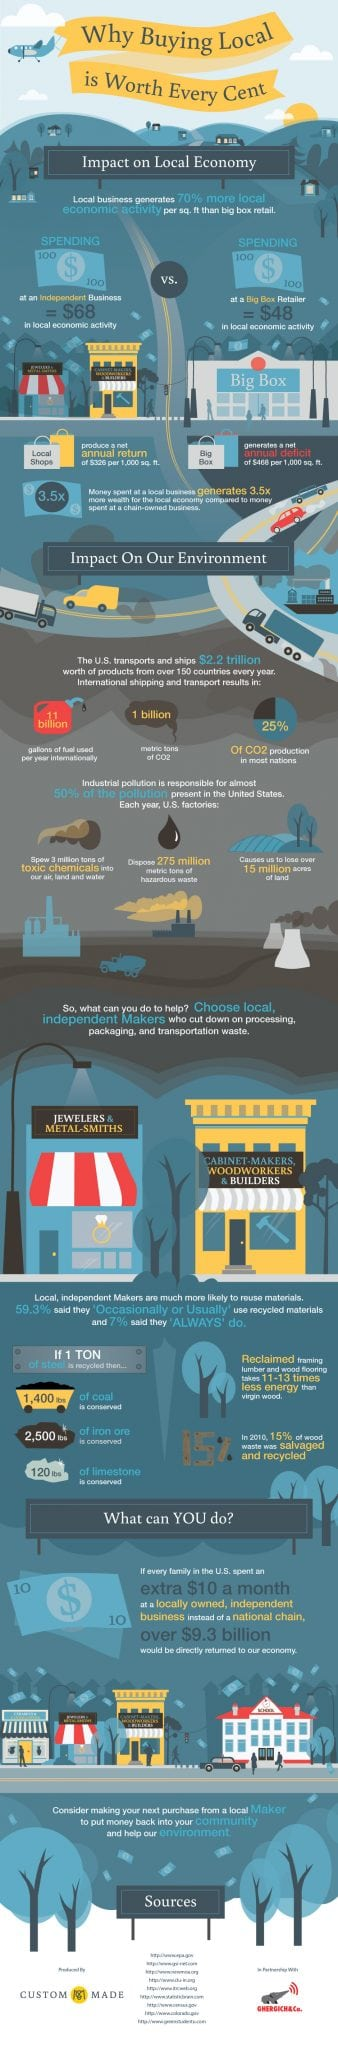 Photo of Why Buying Local is Worth Every Cent [INFOGRAPHIC]